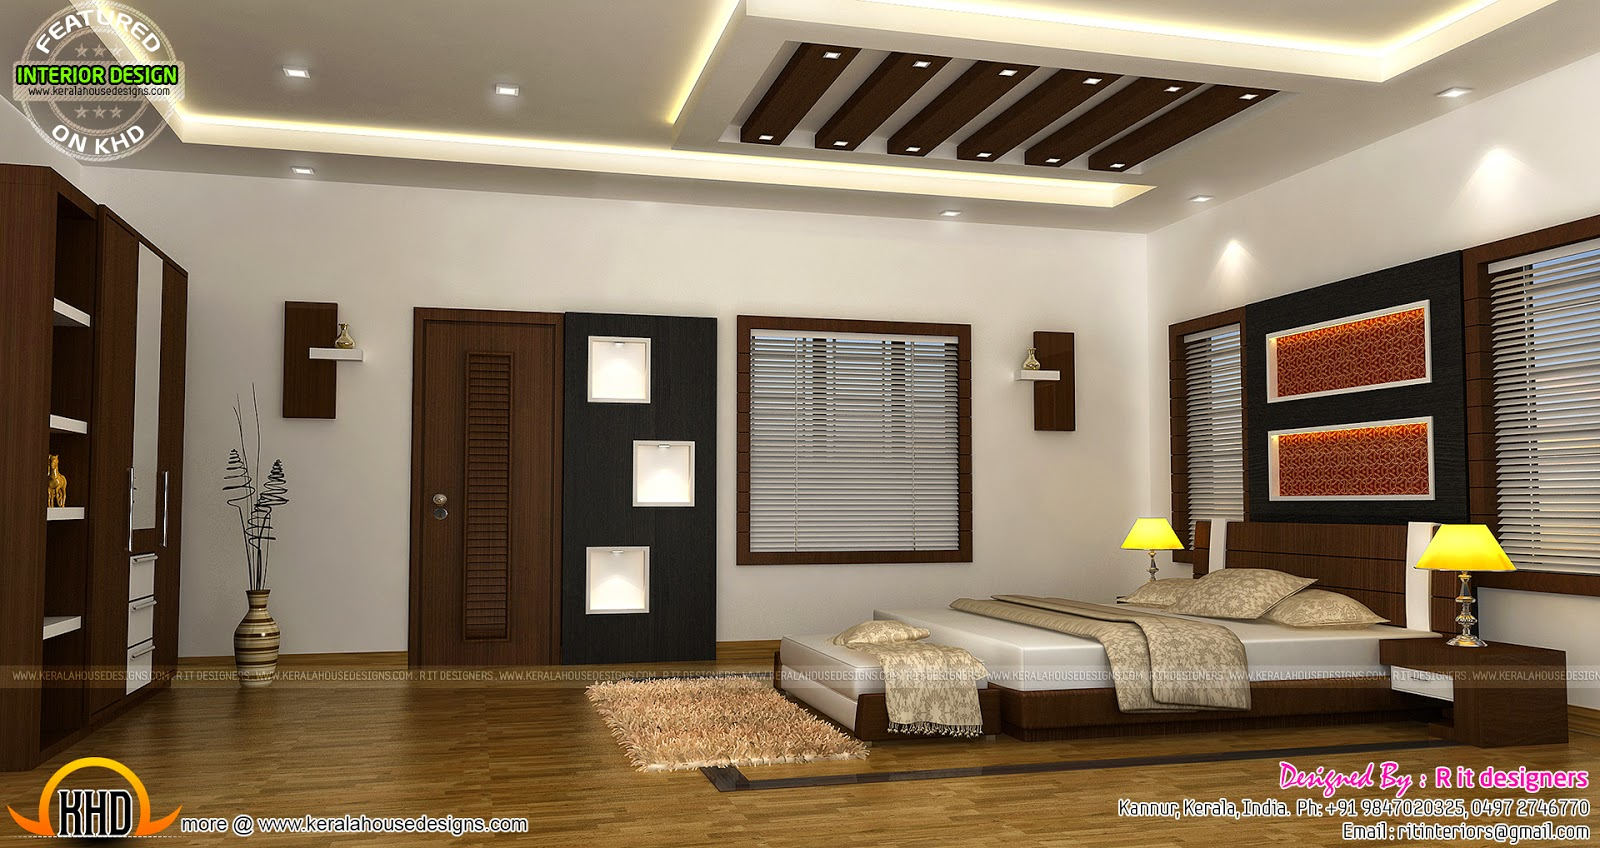 Bedroom interior design with cost - Kerala home design and ...